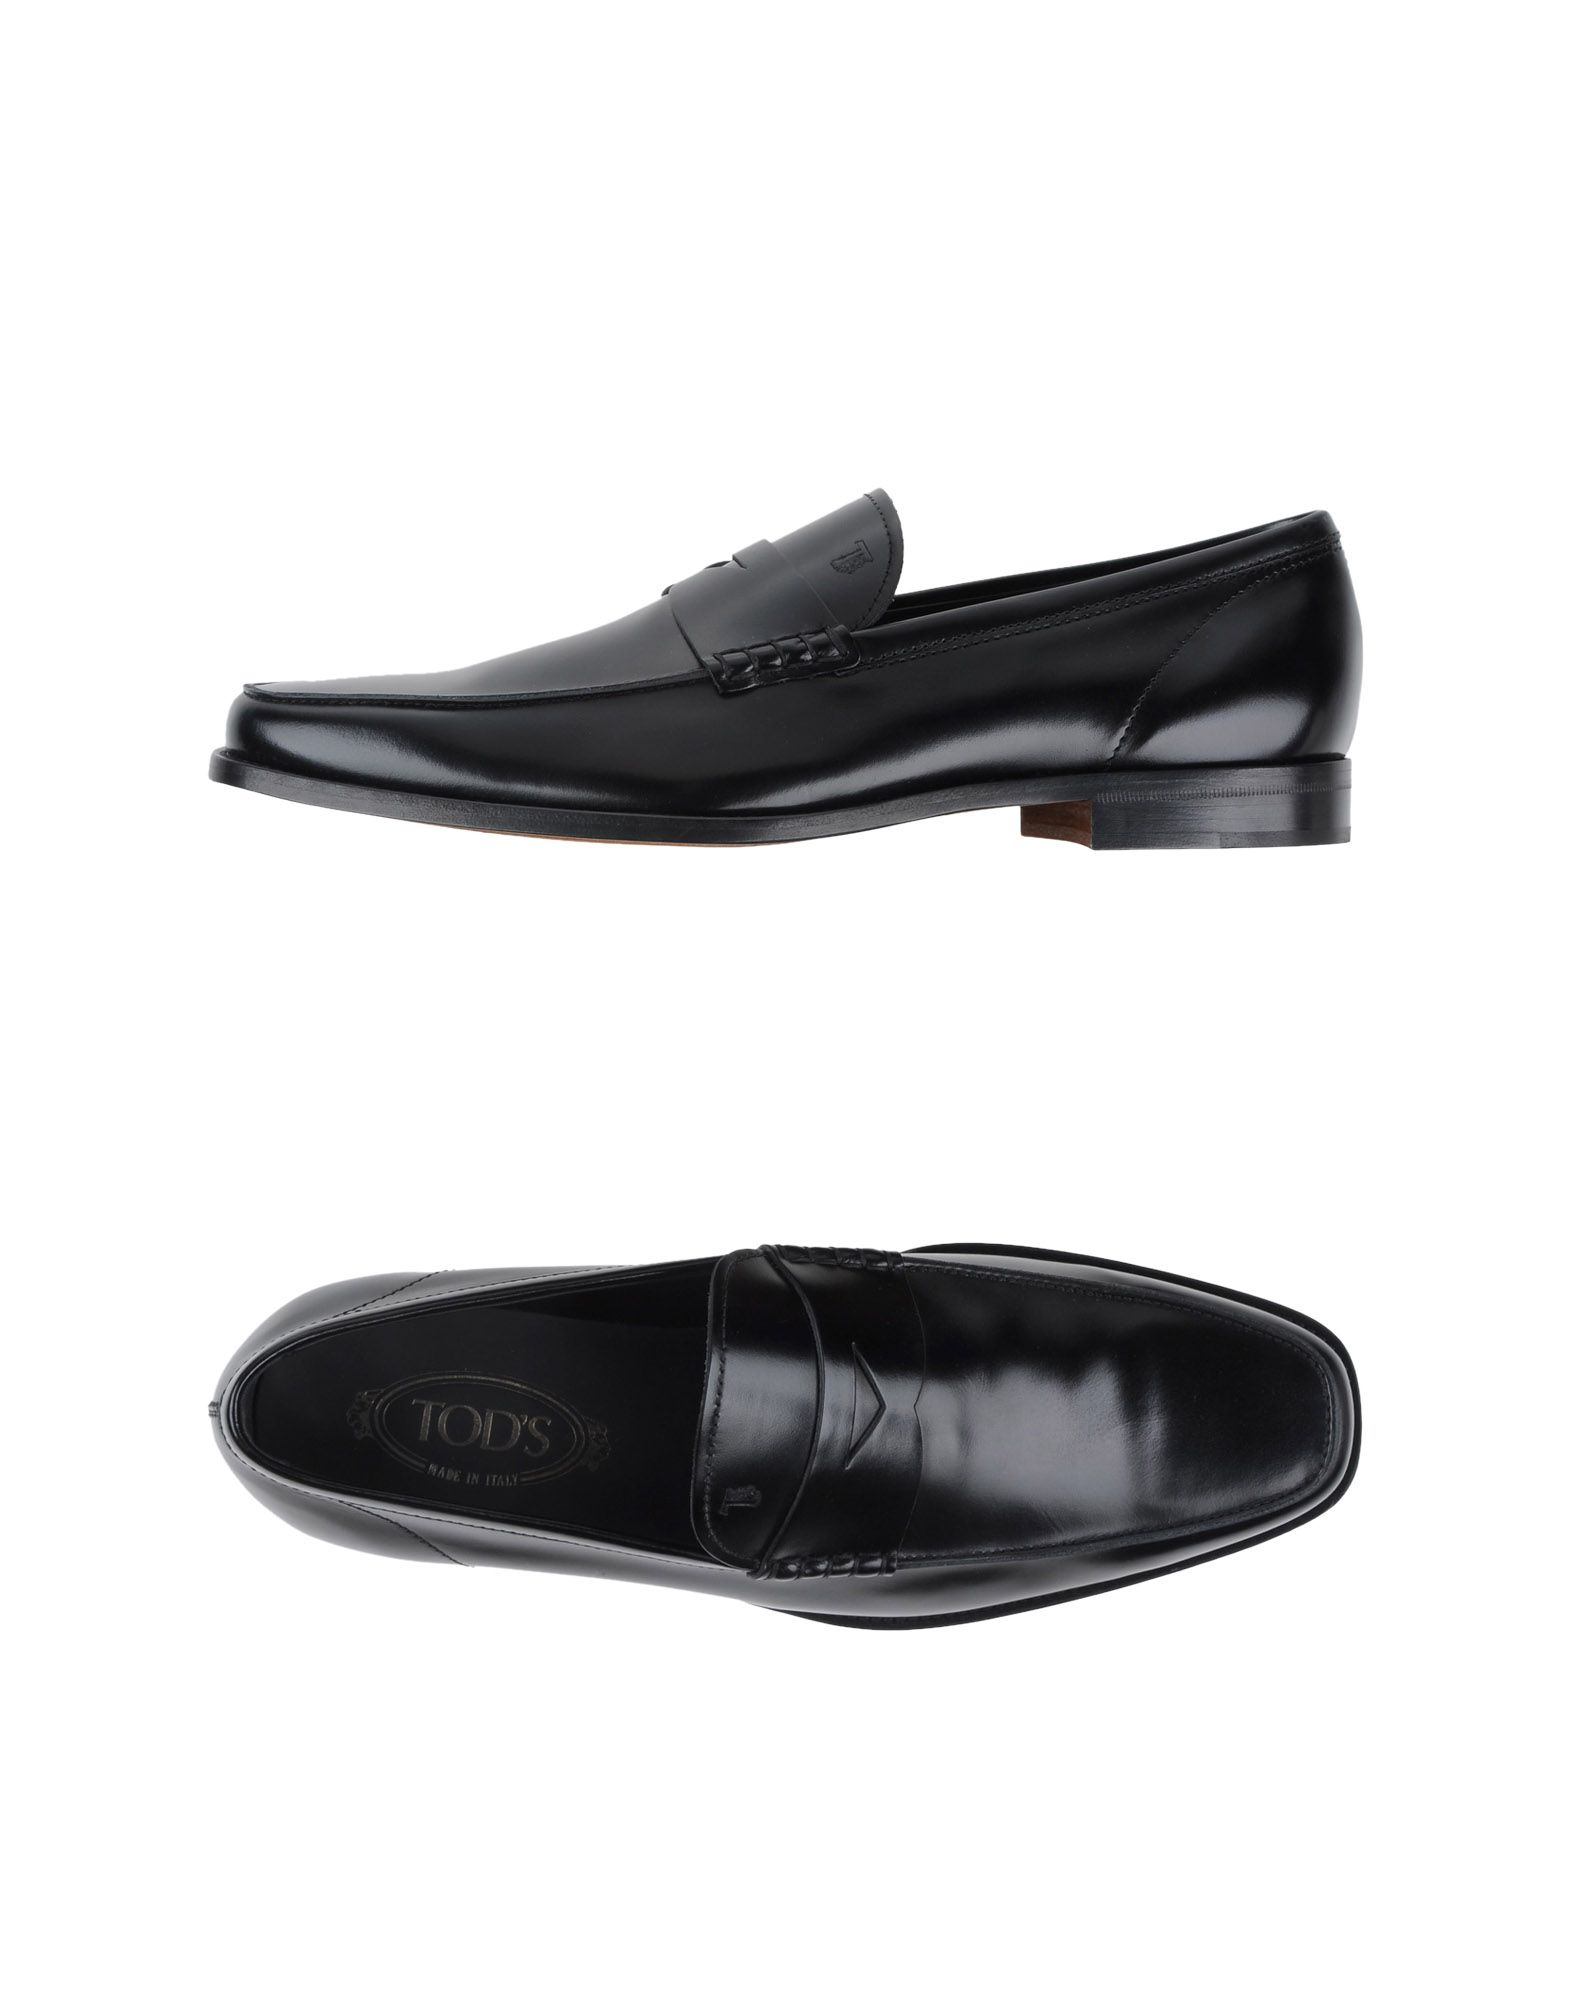 black single men in moccasin Buy men's moccasins online in india at best price select latest range of moccasin shoes for men online at metro shoes avail free shipping, cod & 30-days returns.